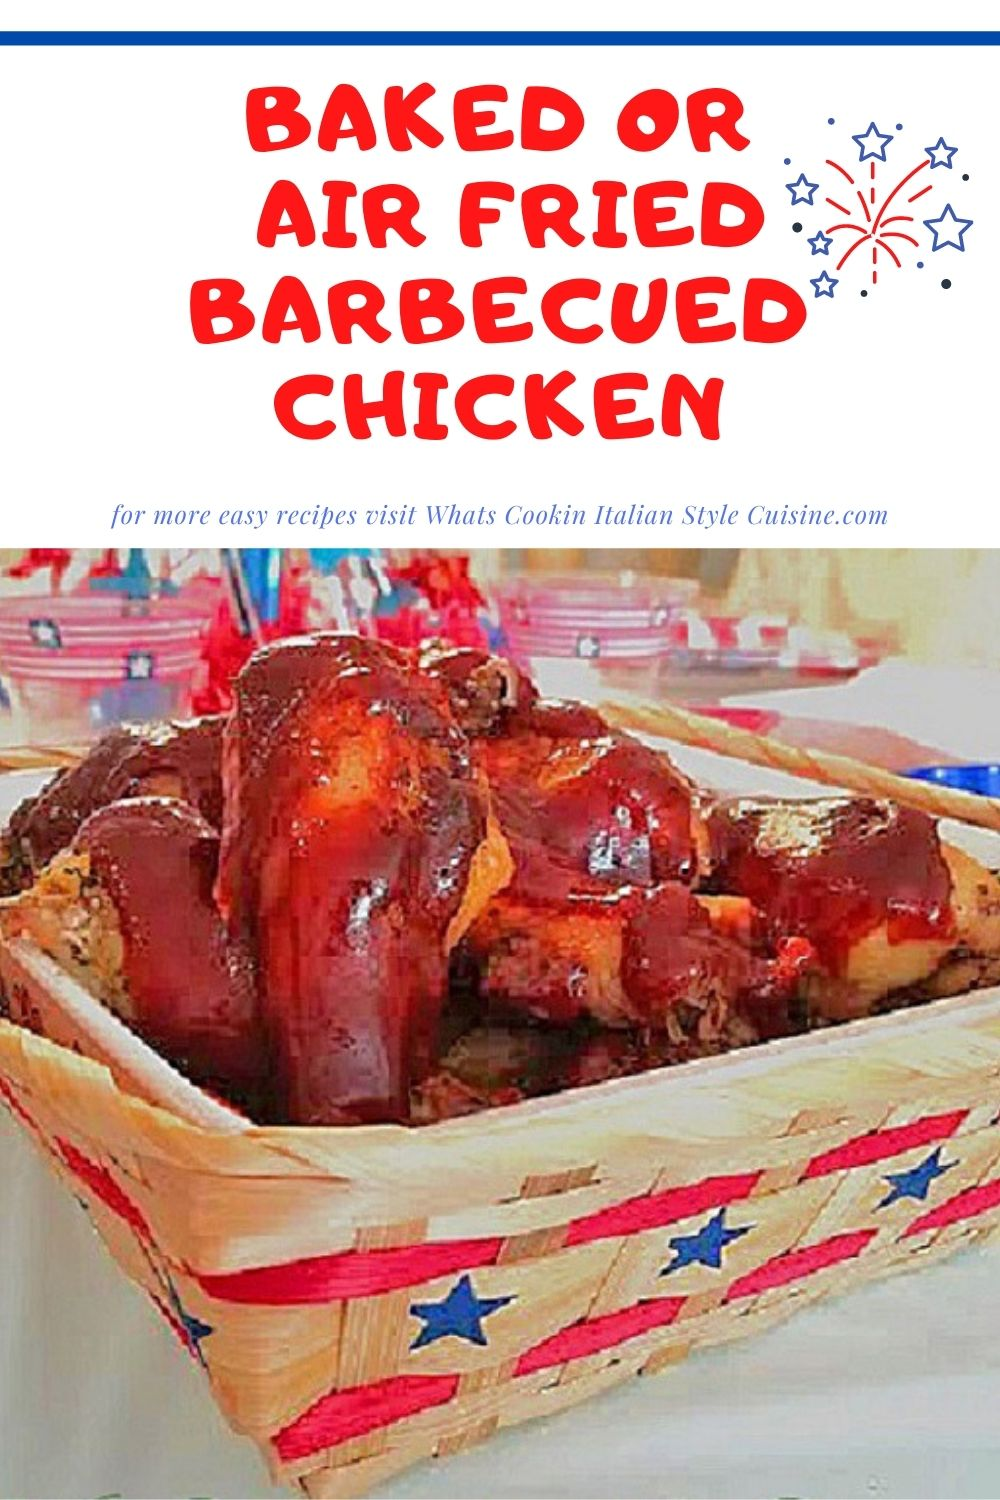 pin for later on how to make air fried barbecued chicken